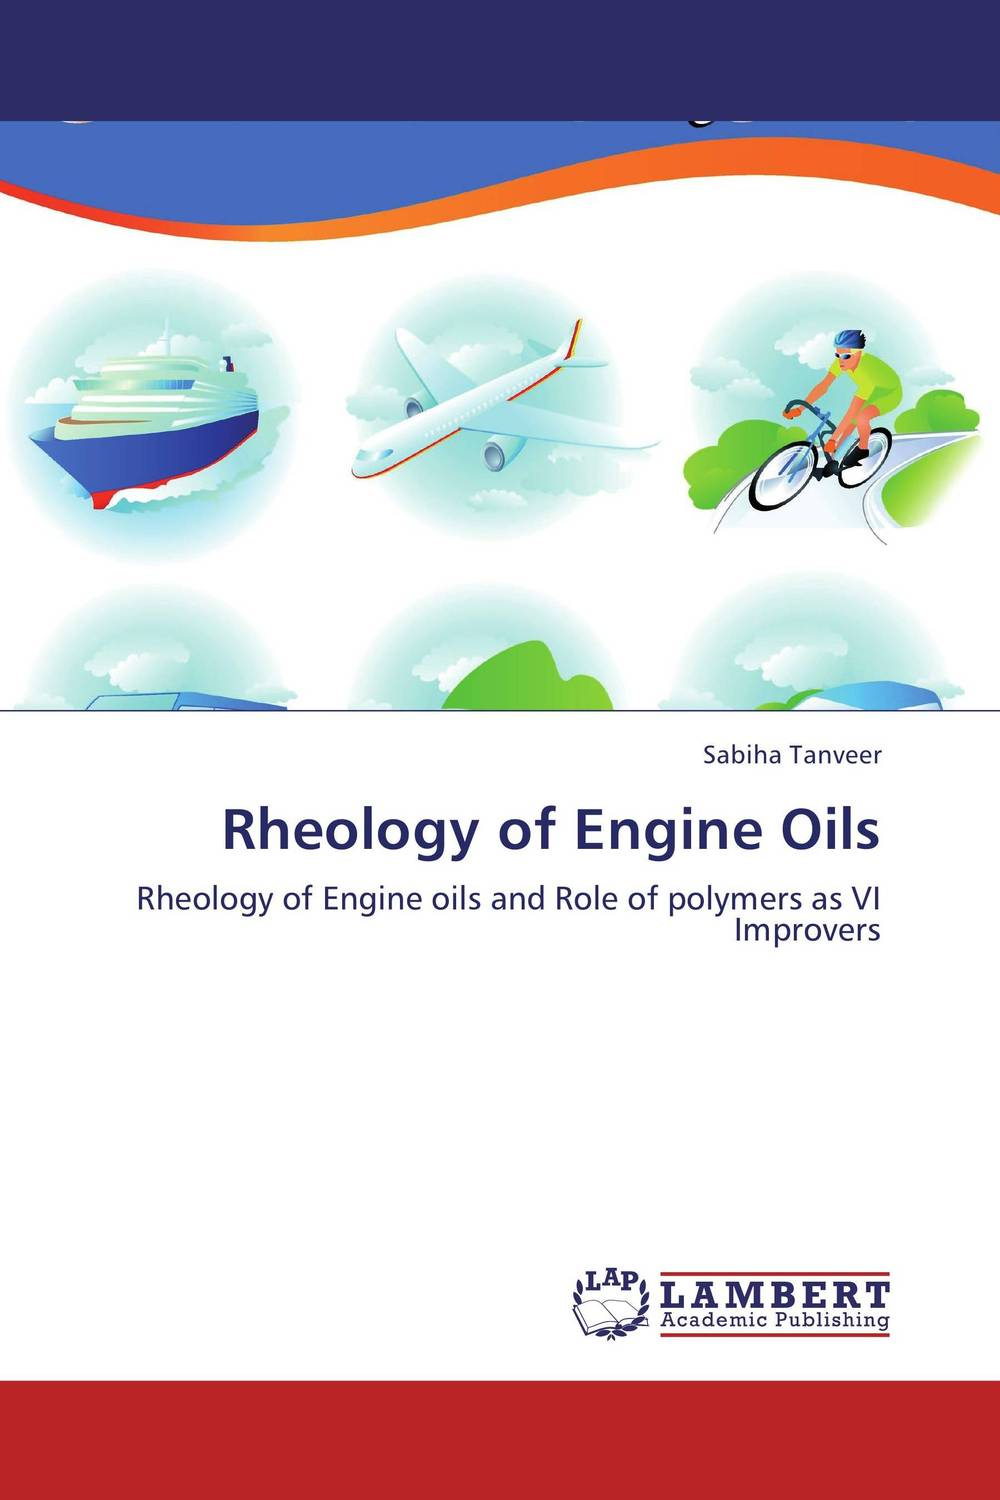 Rheology of Engine Oils dearomatization of crude oil